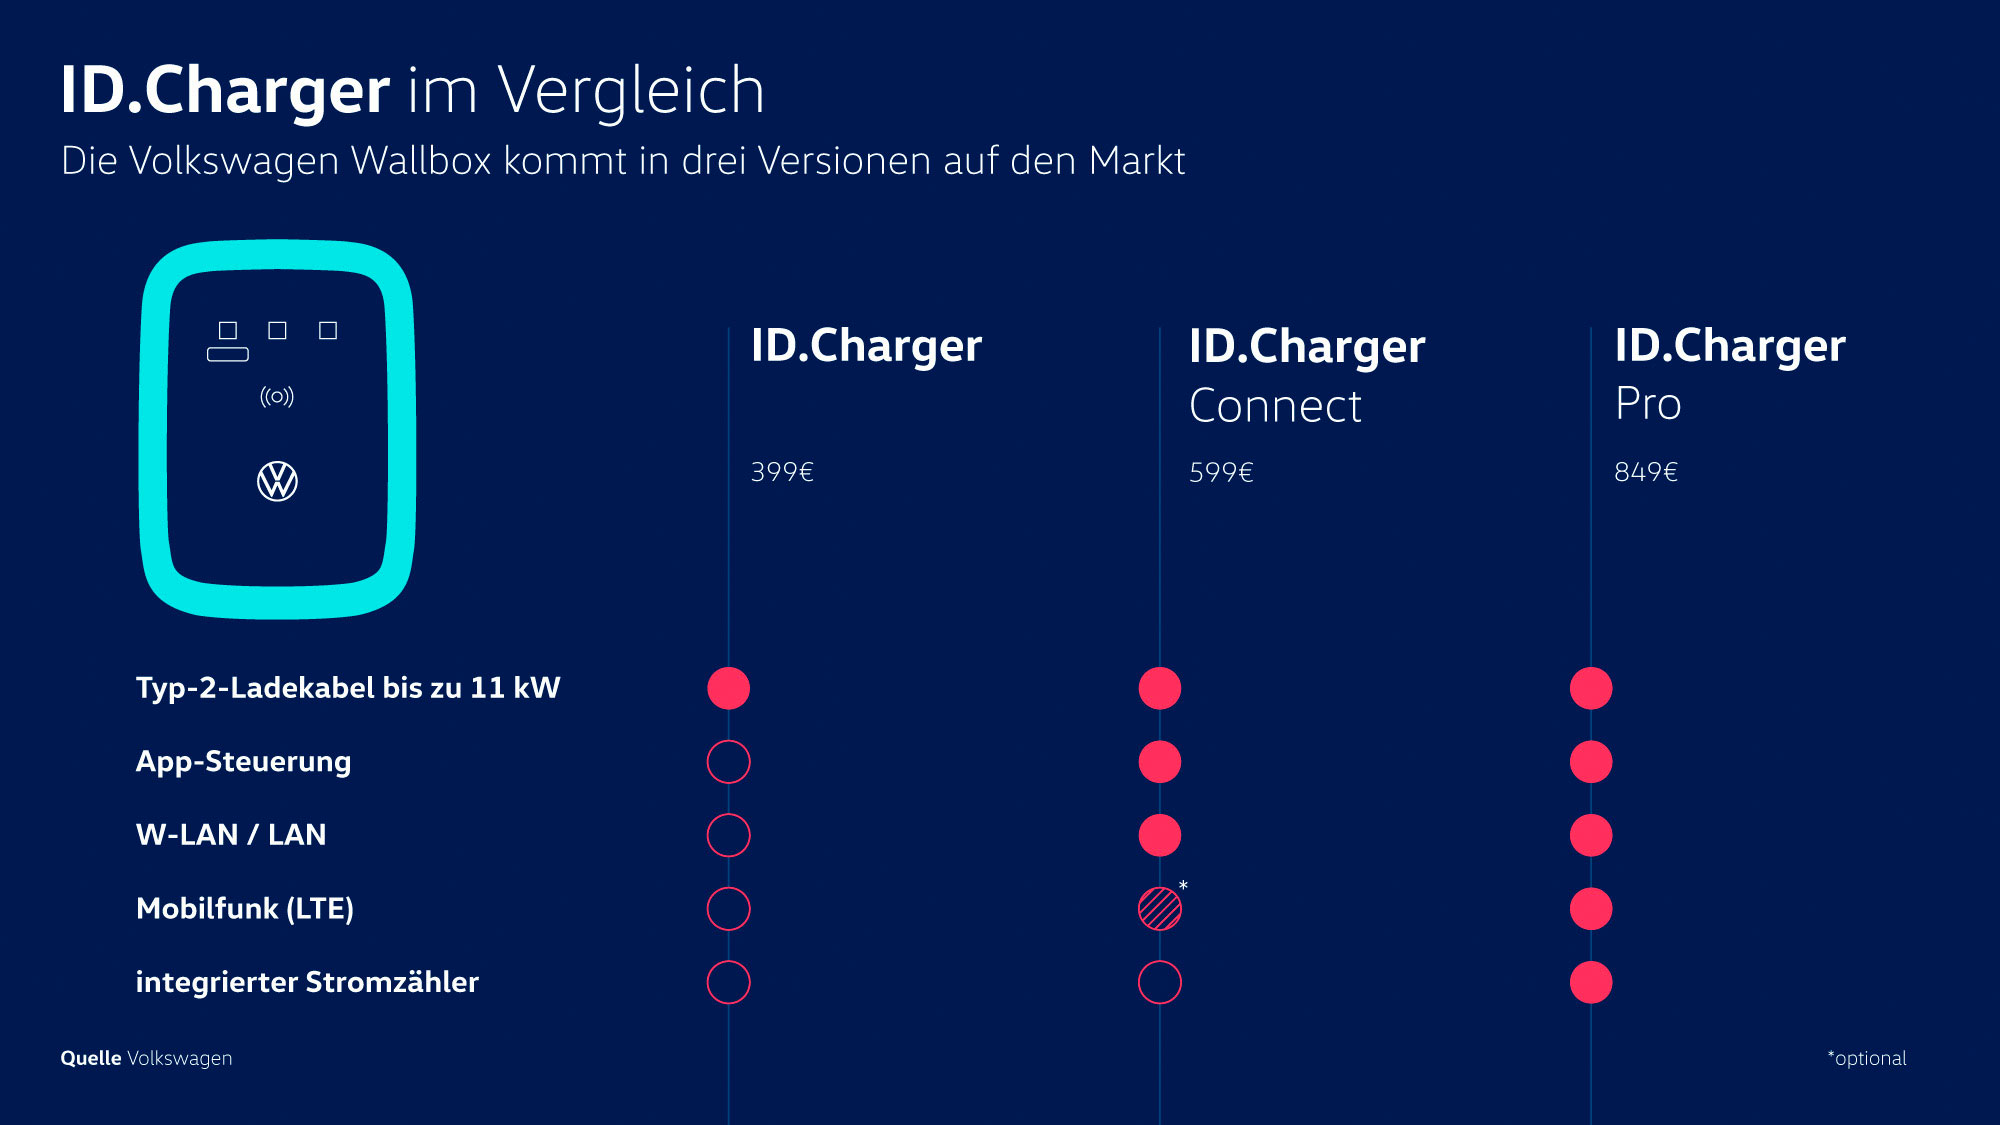 ID.Charger-Versionen